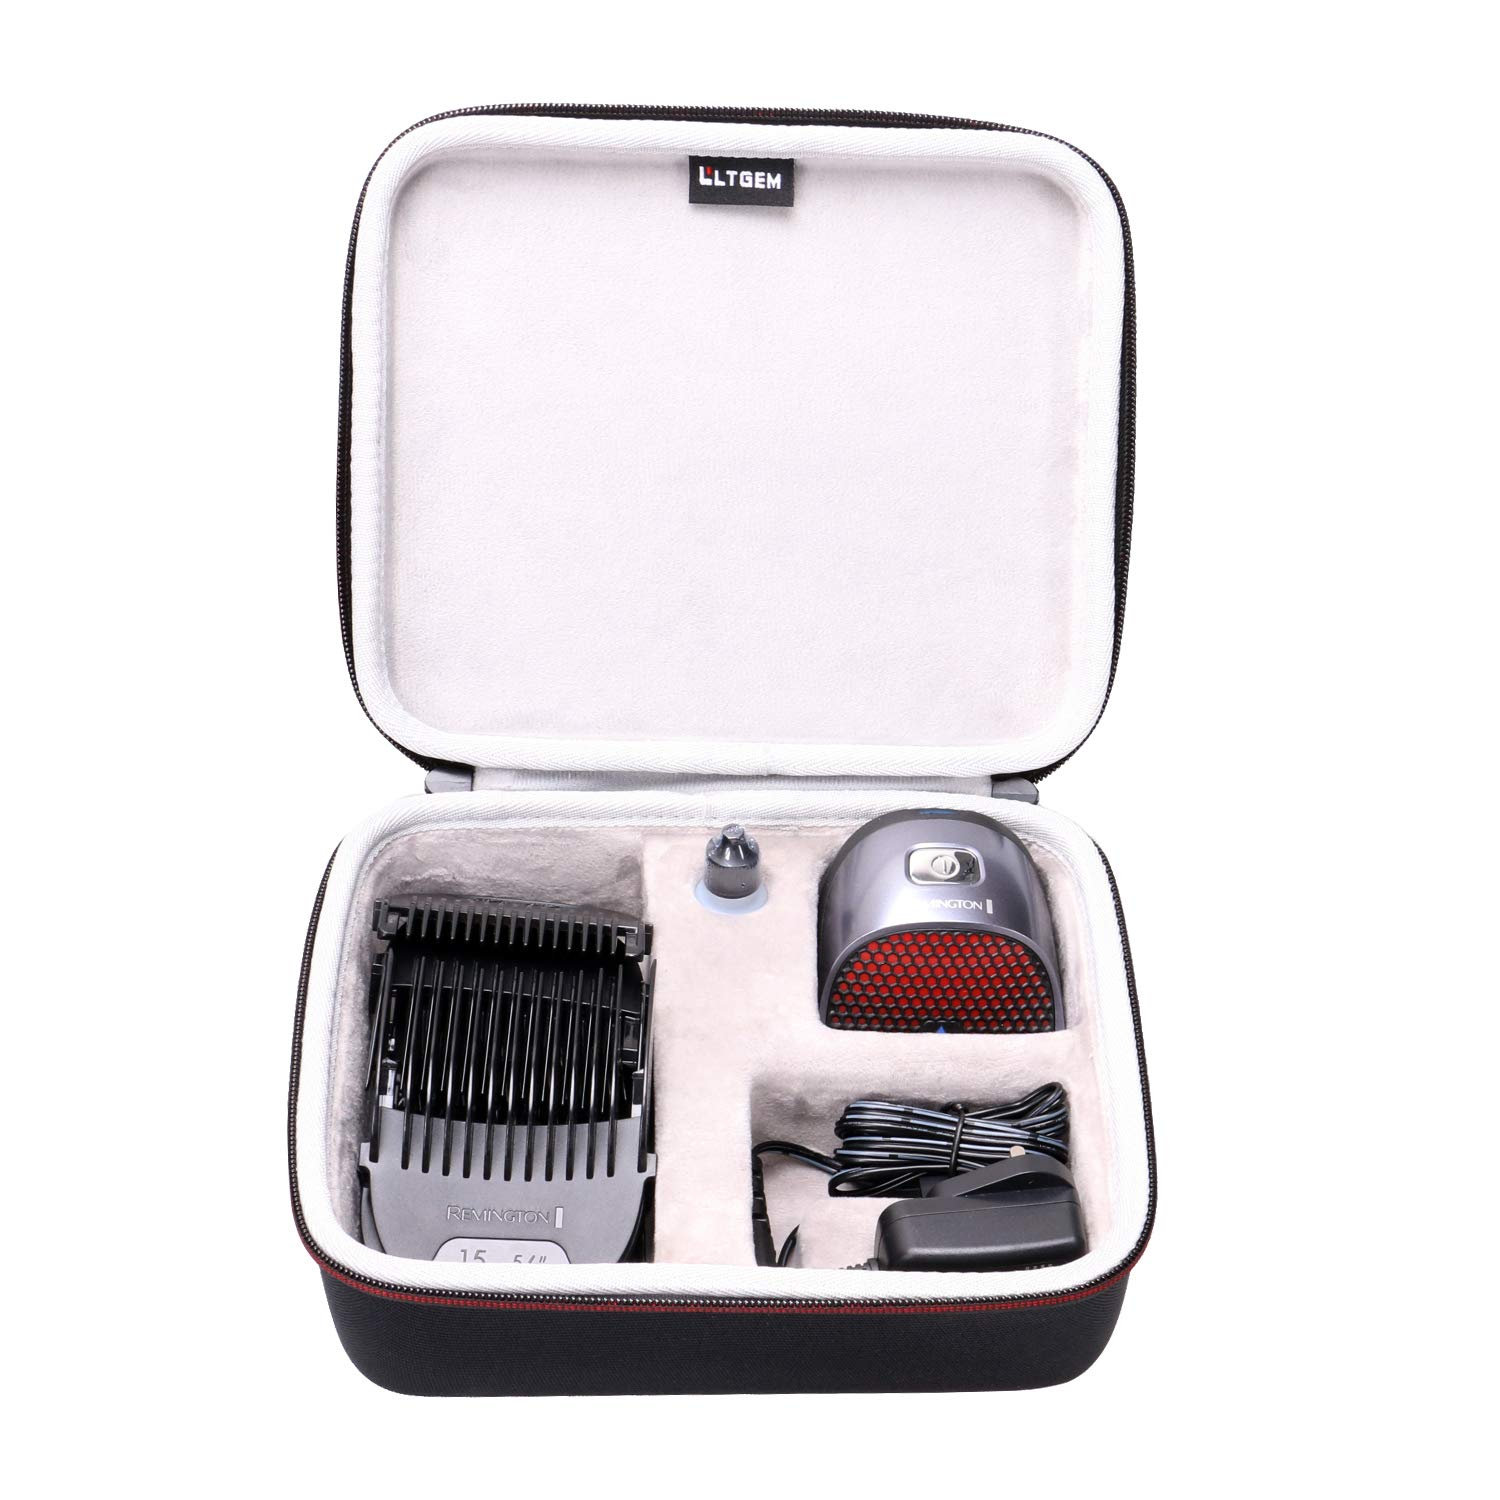 LTGEM Hard Travel Carrying Case for Remington HC4250 Shortcut Pro Self-Haircut Kit, Hair Clippers Hair Trimmers Clippers CS255